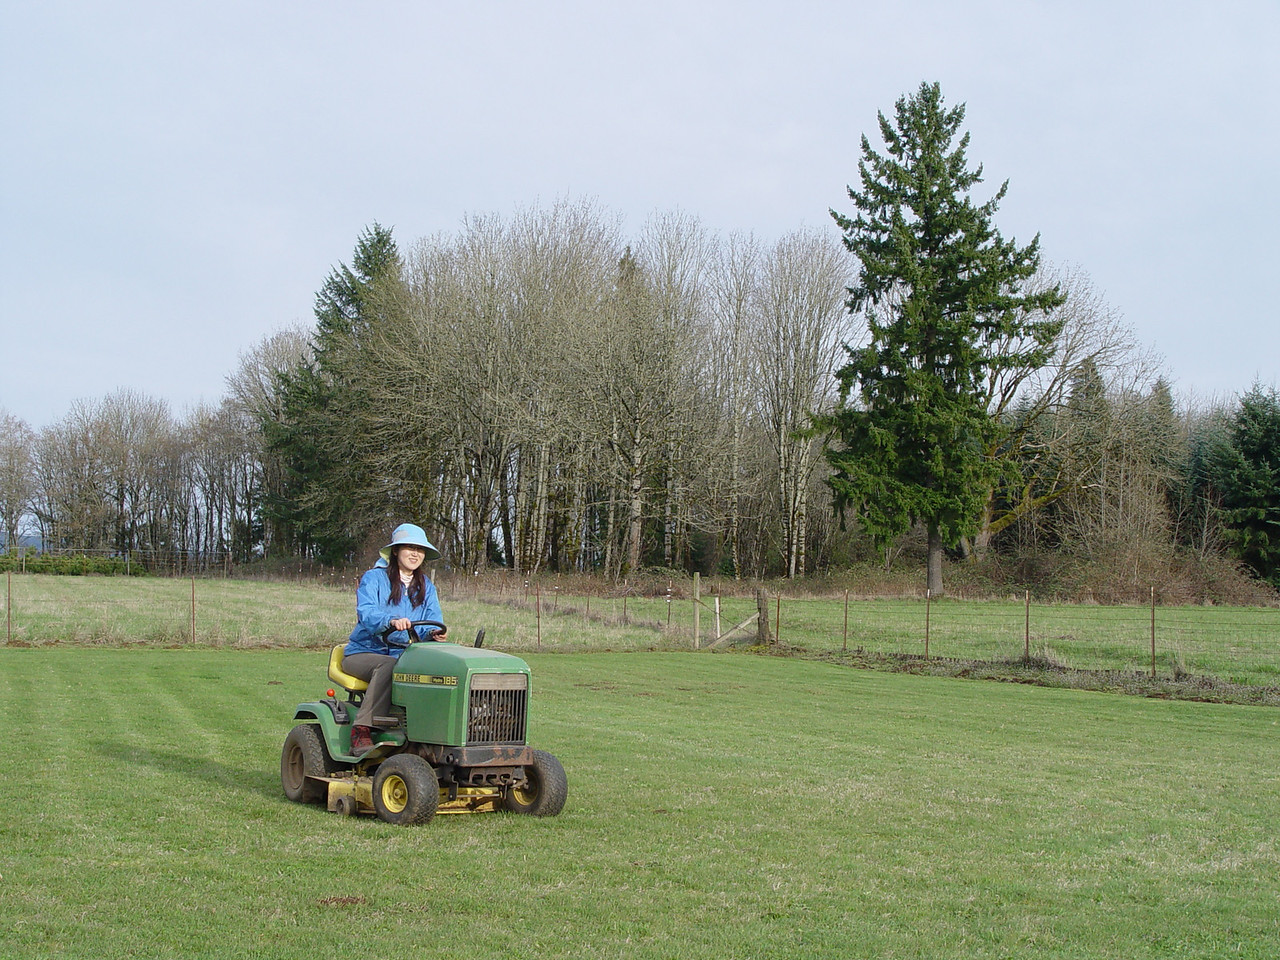 Chiyoko taking the mower for a spin in the back field